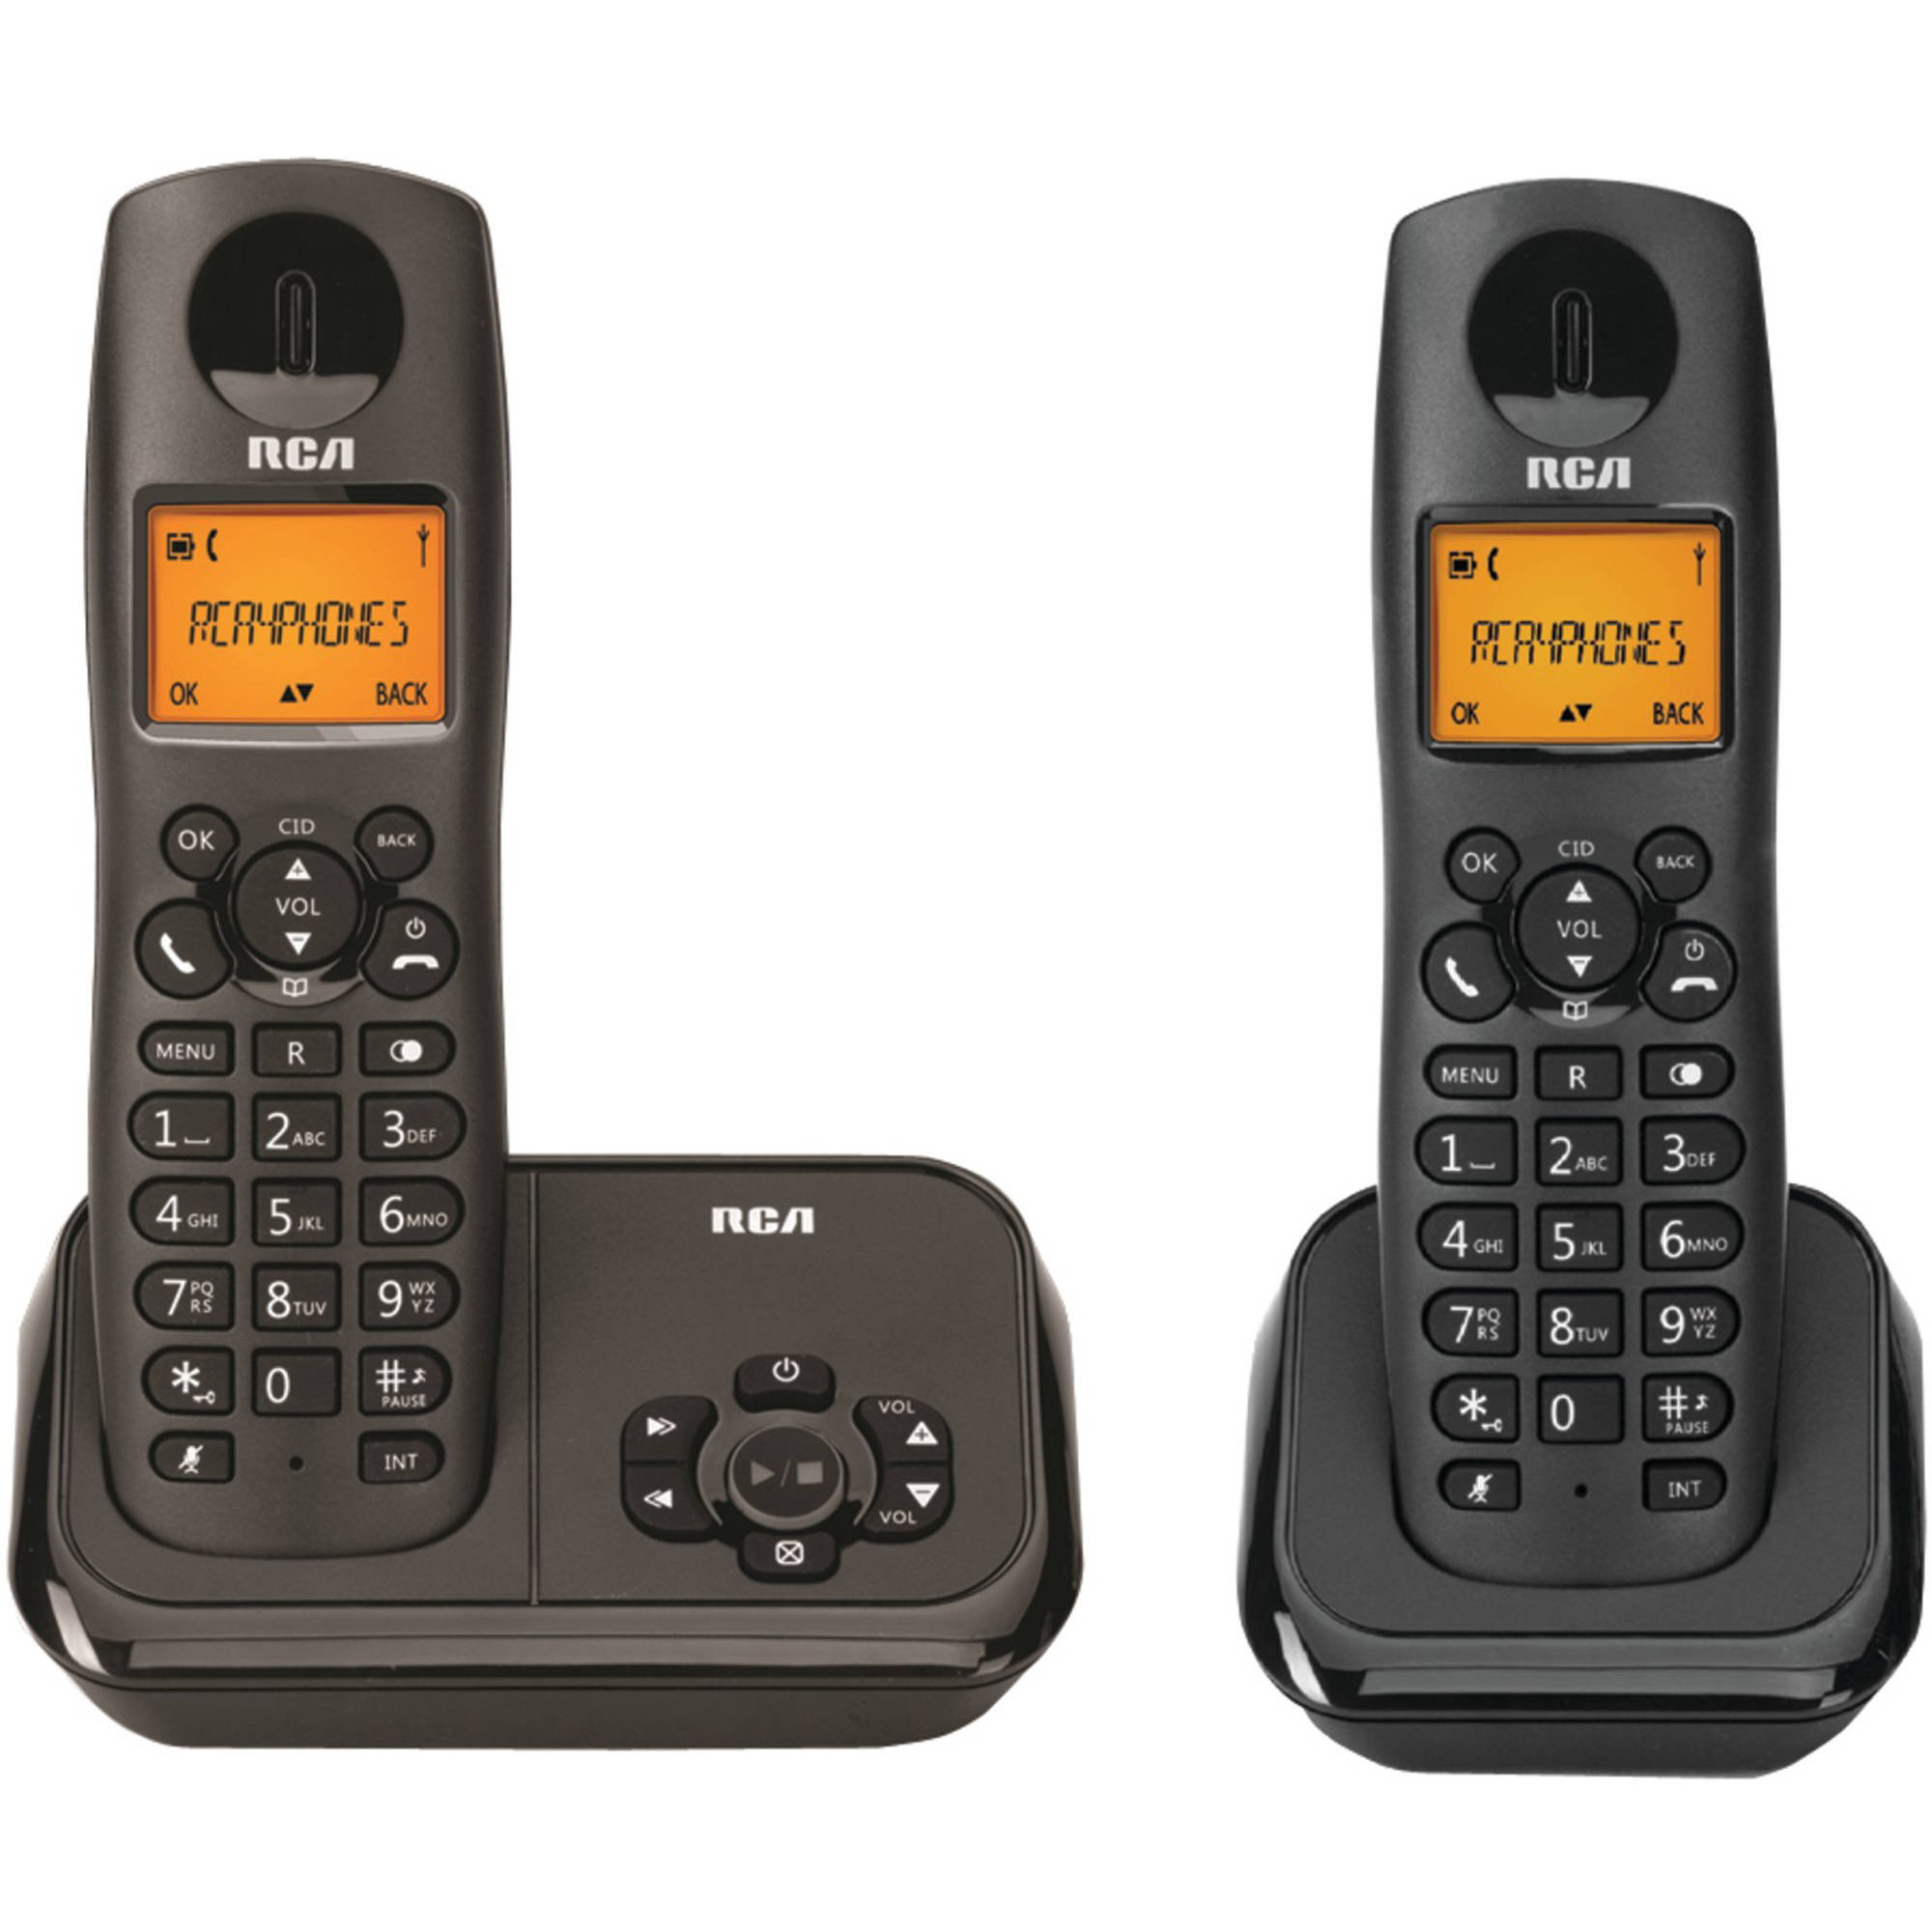 RCA 2162-2BKGA Element Series DECT 6.0 Cordless Phone with Caller ID and Digital Answering System 2-Handset System